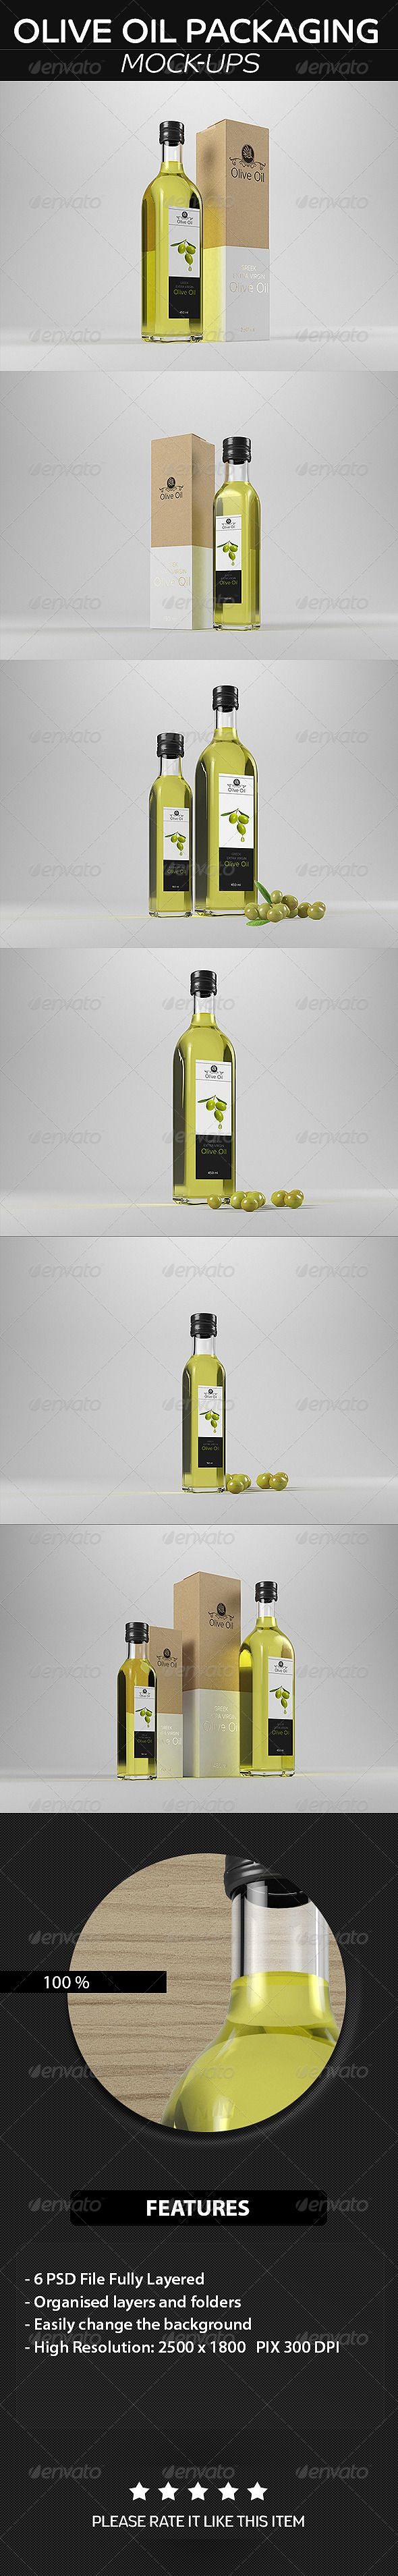 Olive Oil Packaging  Mockup — Photoshop PSD #mockup #packaging • Available here → https://graphicriver.net/item/olive-oil-packaging-mockup/8739289?ref=pxcr